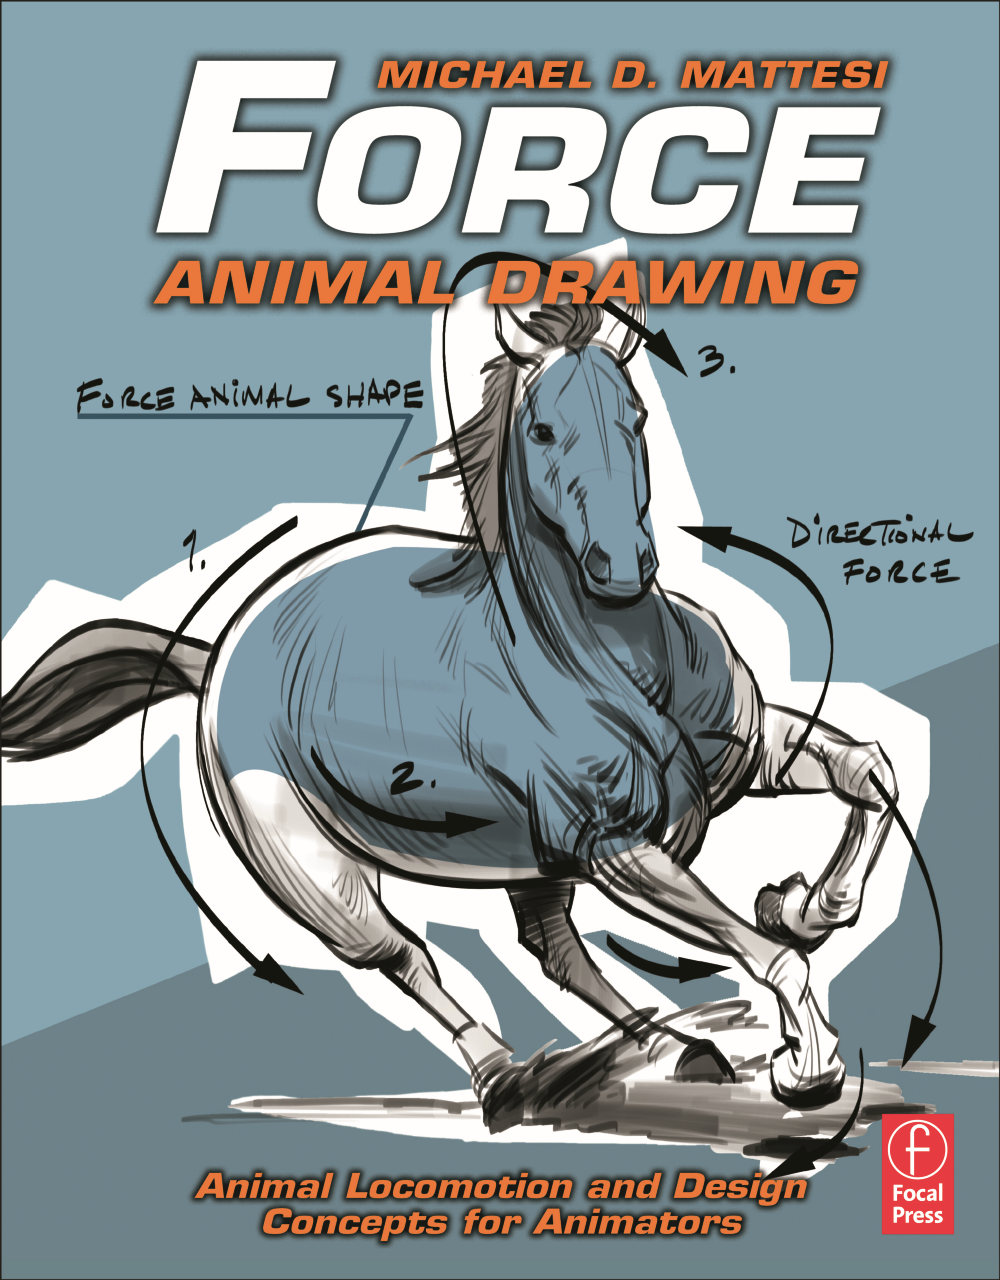 Book Cover of 'Force: Animal Drawing Animal locomotion and design concepts for animators' by Mike Mattesi